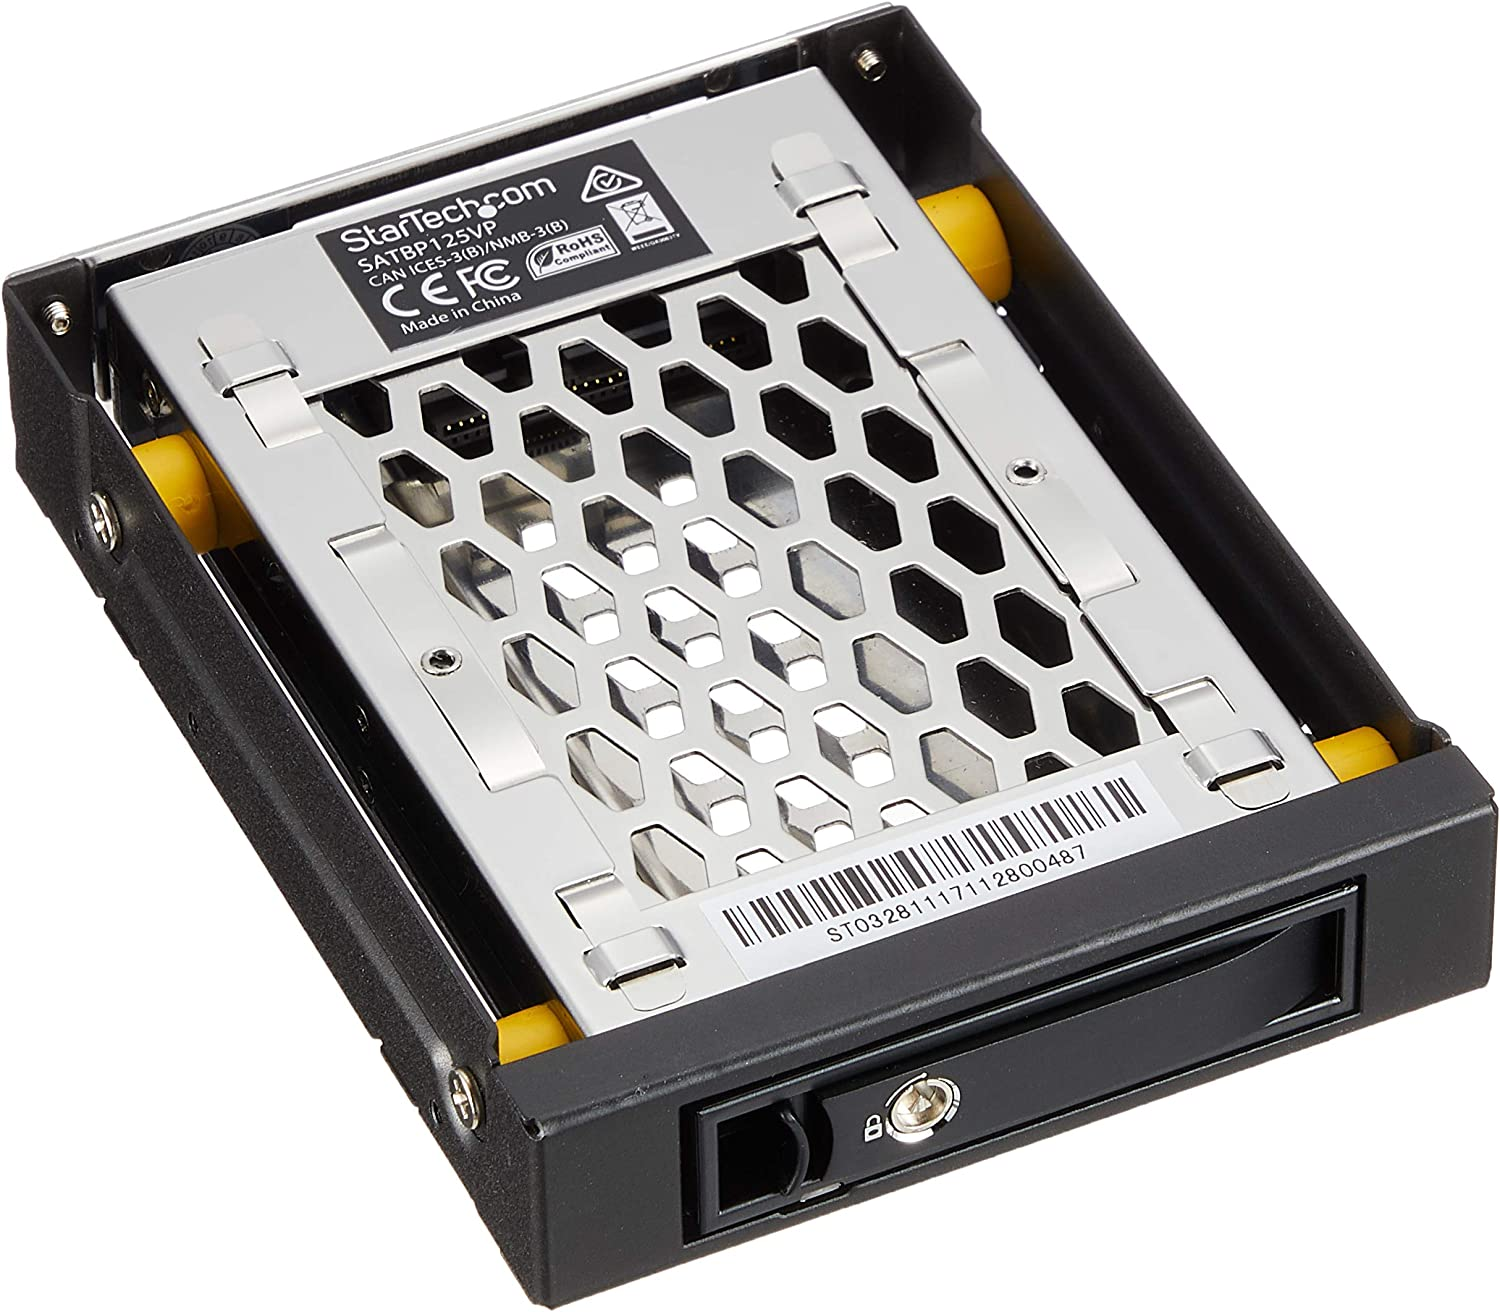 Bahia Frontal 3.5 Hot Swap para 2.5 SSD/SATA HDD Caddy